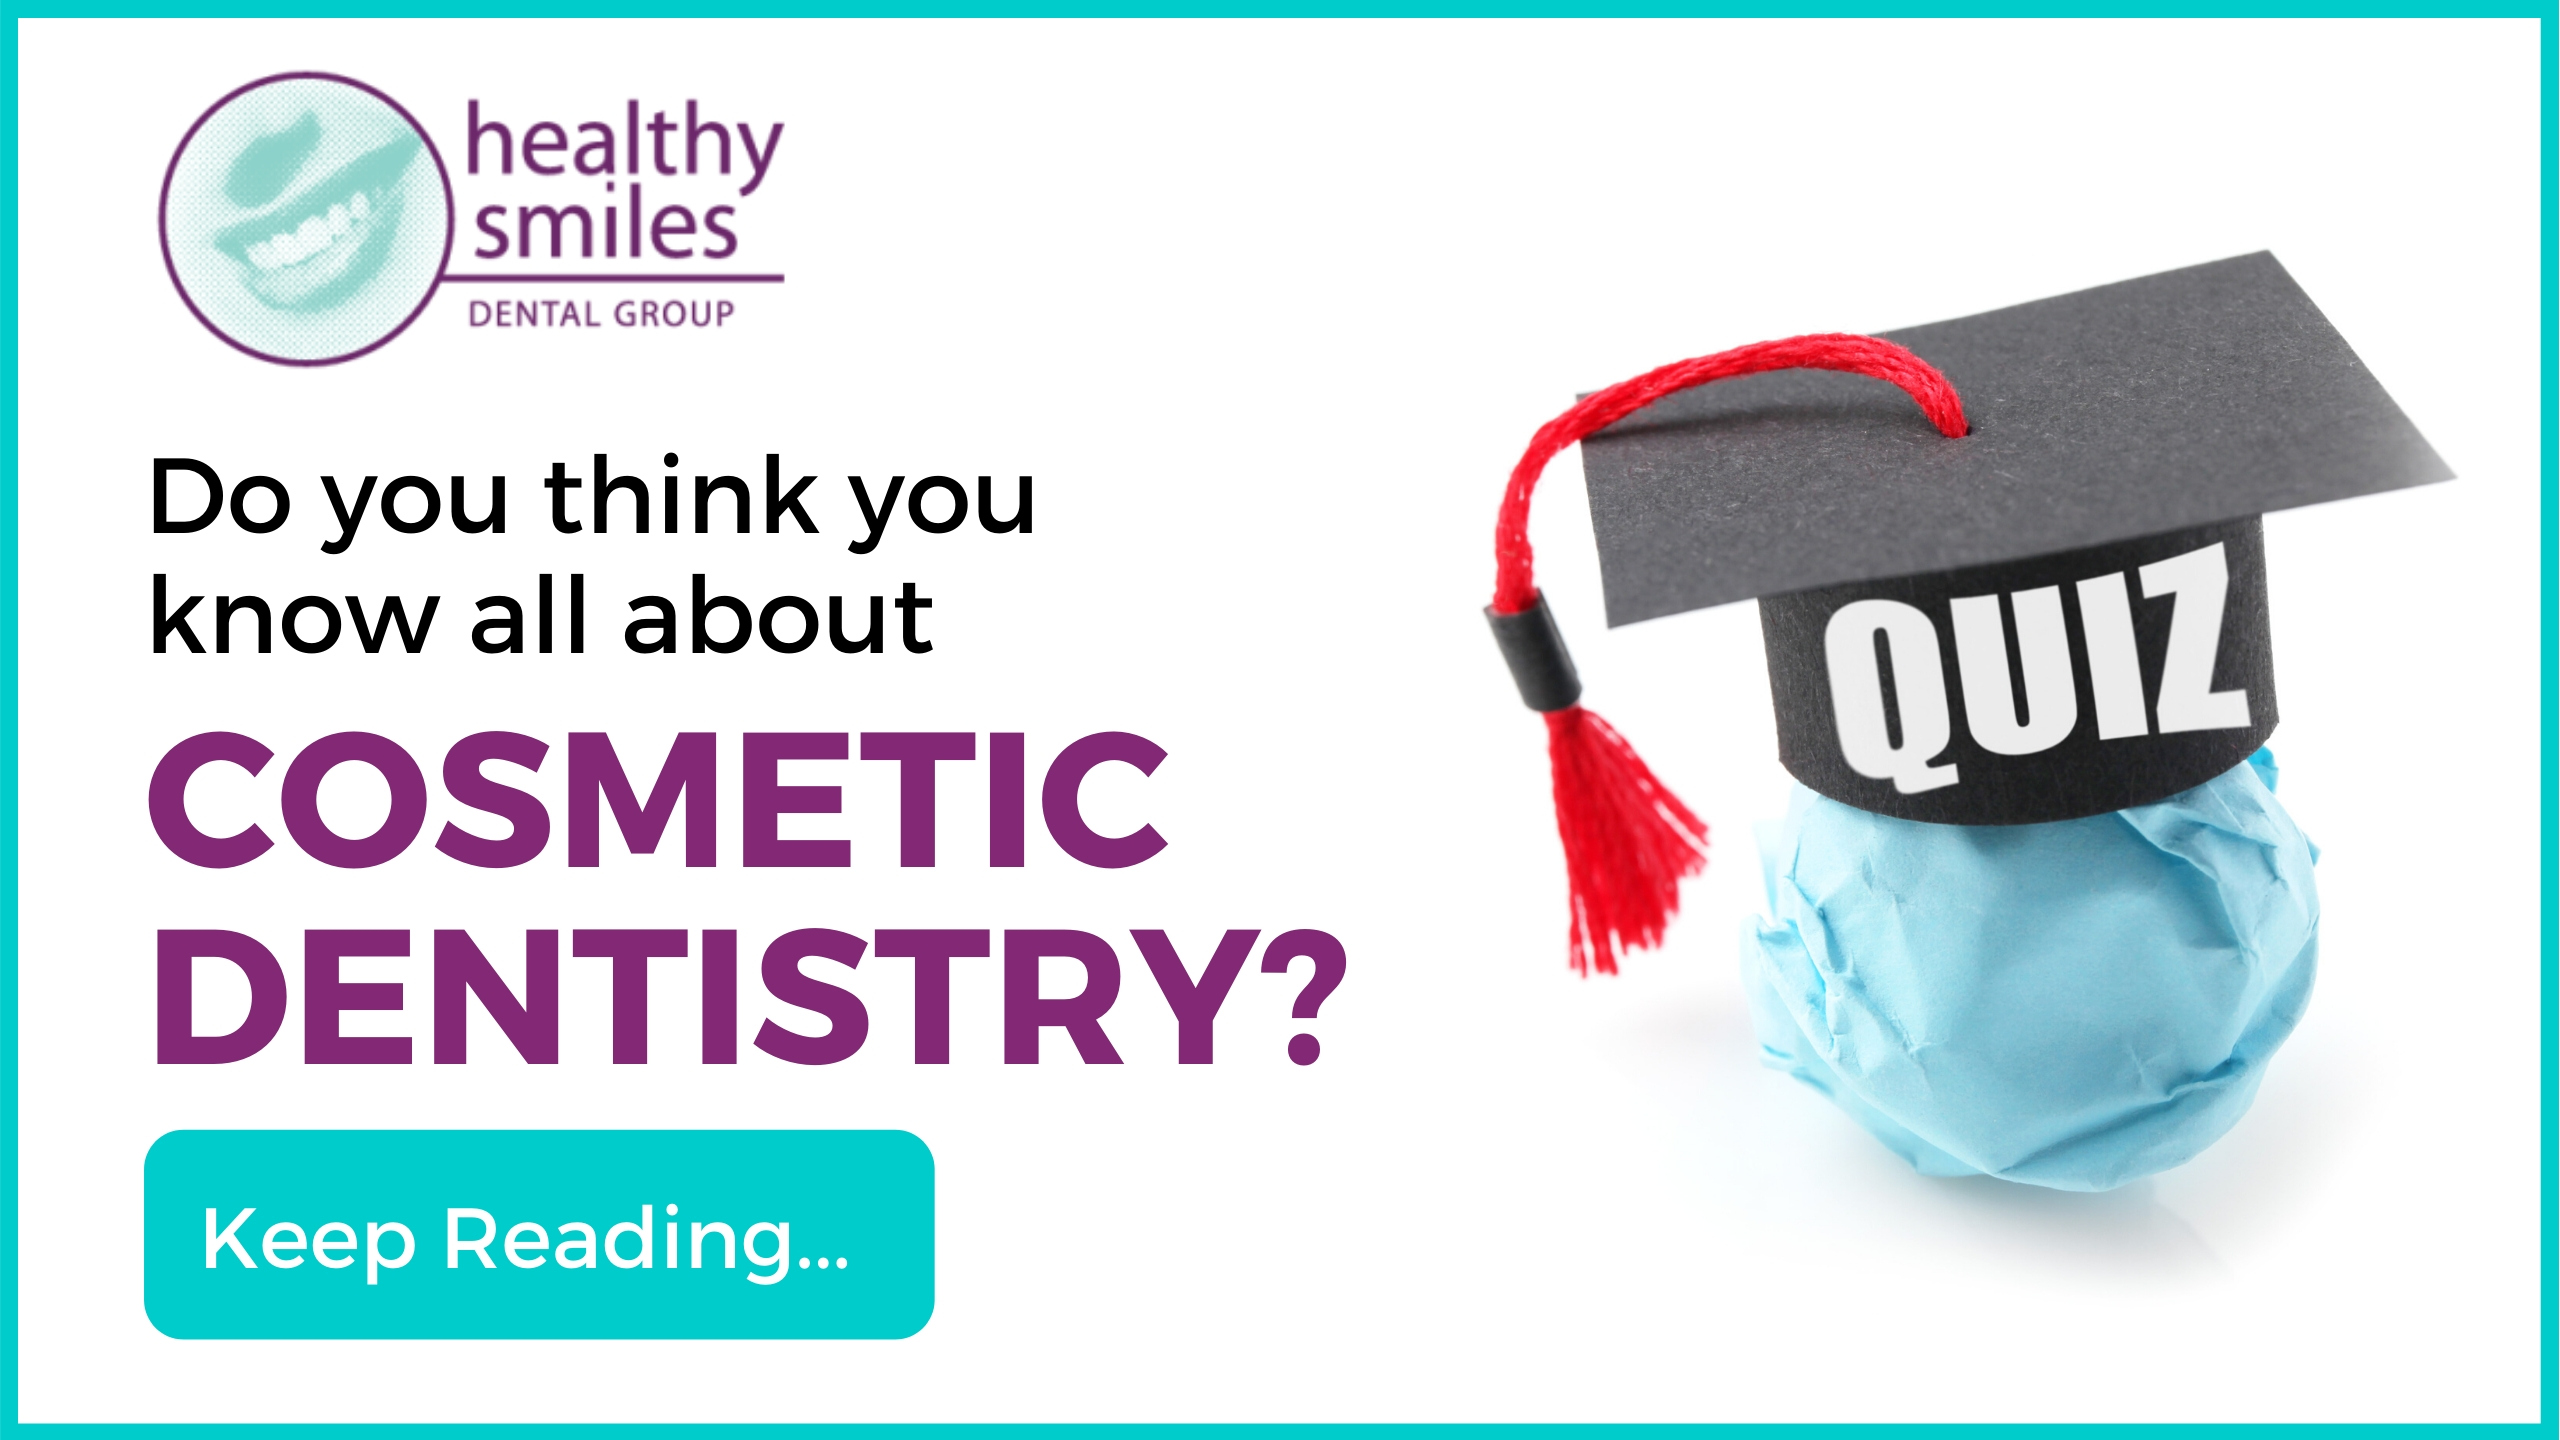 Cosmetic Dentistry Quiz: Do You Think You Know All About It?